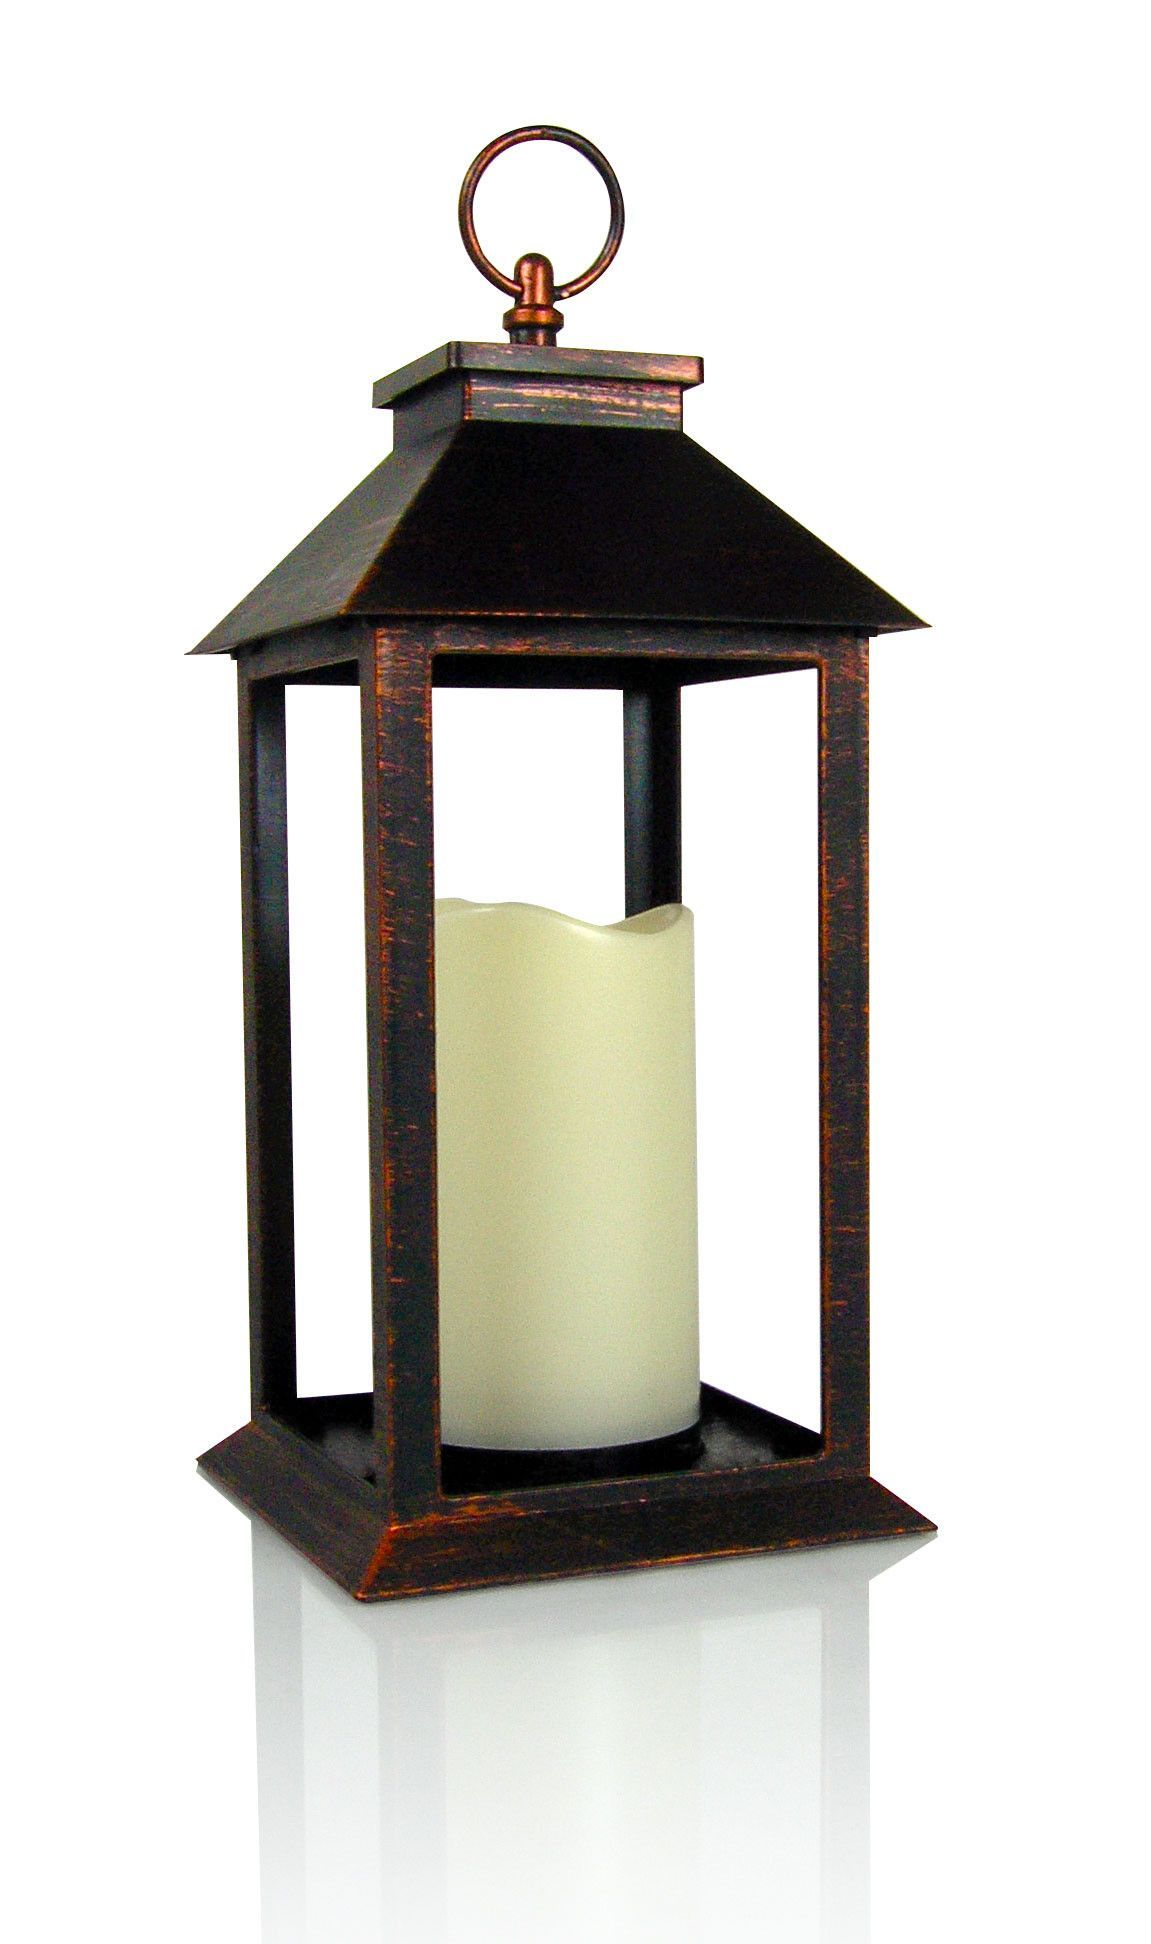 hour vintage decorative outdoor battery operated lighting itm style lanterns timer decor lantern yacool light garden hanging